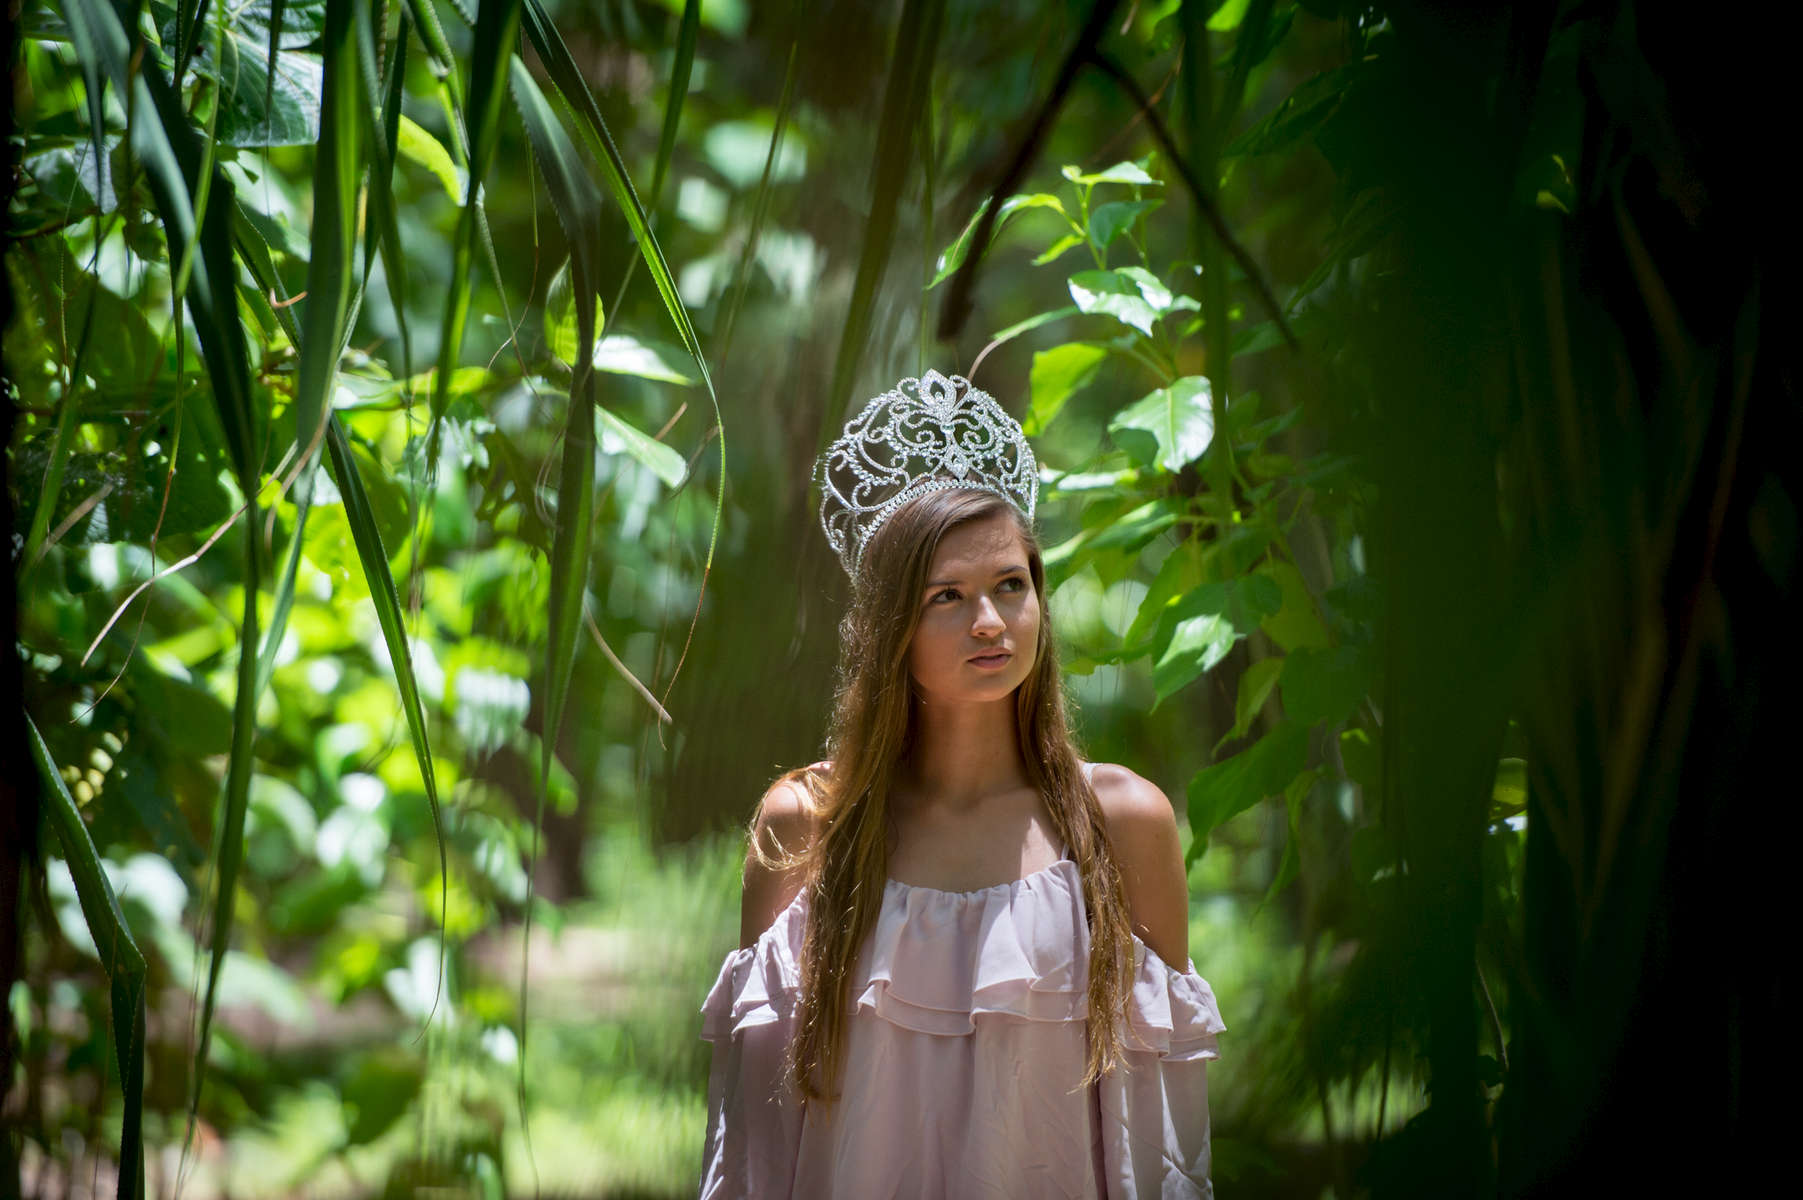 Emma Sheedy, 17, Guam High School Senior and track star, was recently crowned Miss Earth Guam, vowing to fight against illegal dumping and preserving the natural environment on Guam. (Aug 14, 2017)Photo by Nancy Borowick